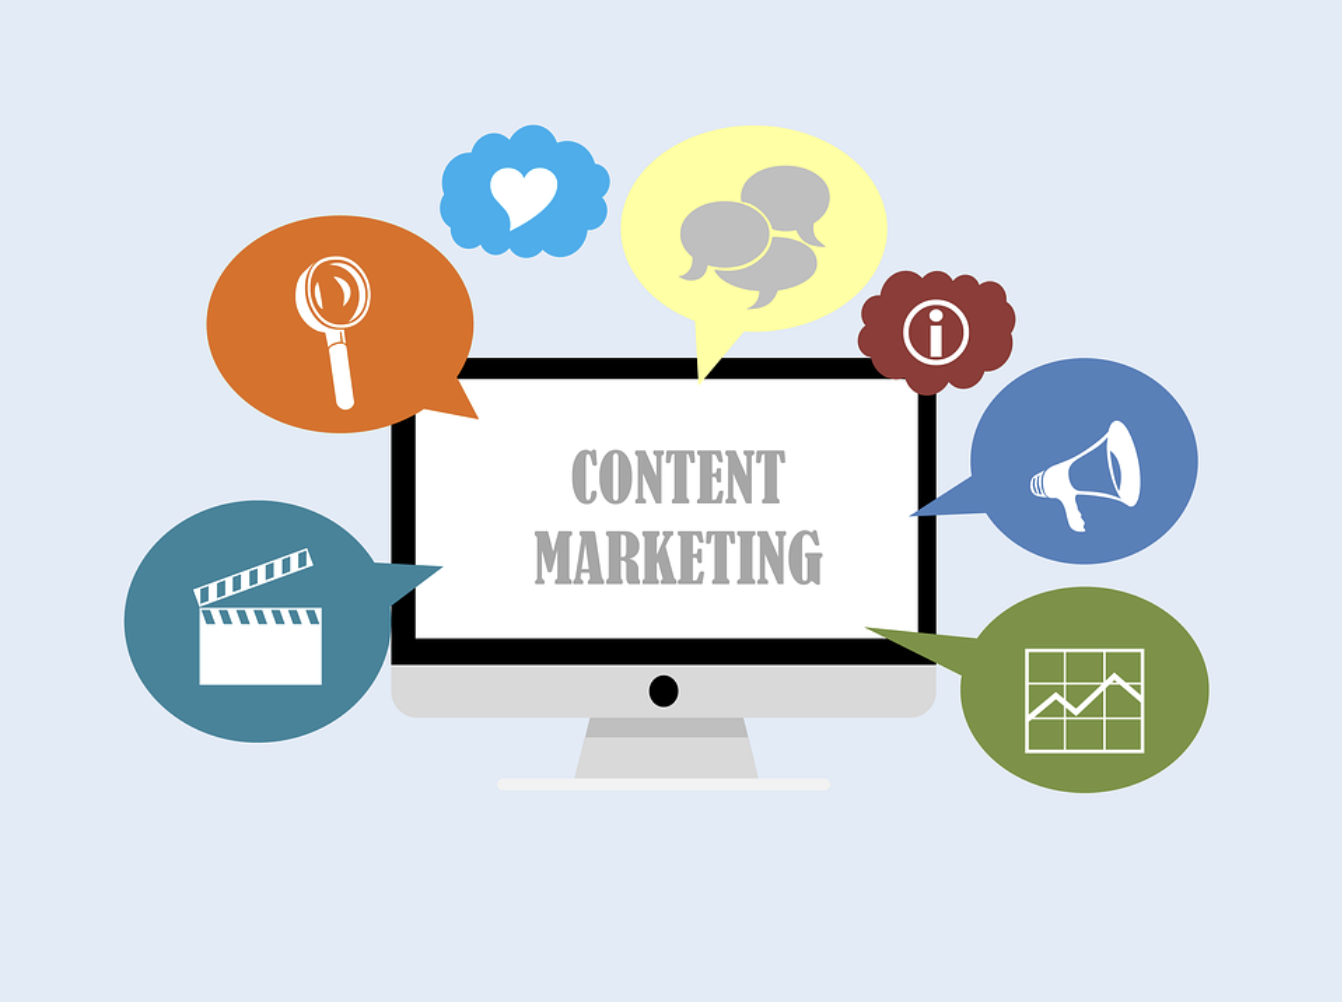 Content marketing resources and tools you should know in 2021 prepared by Ghayoor Zafar